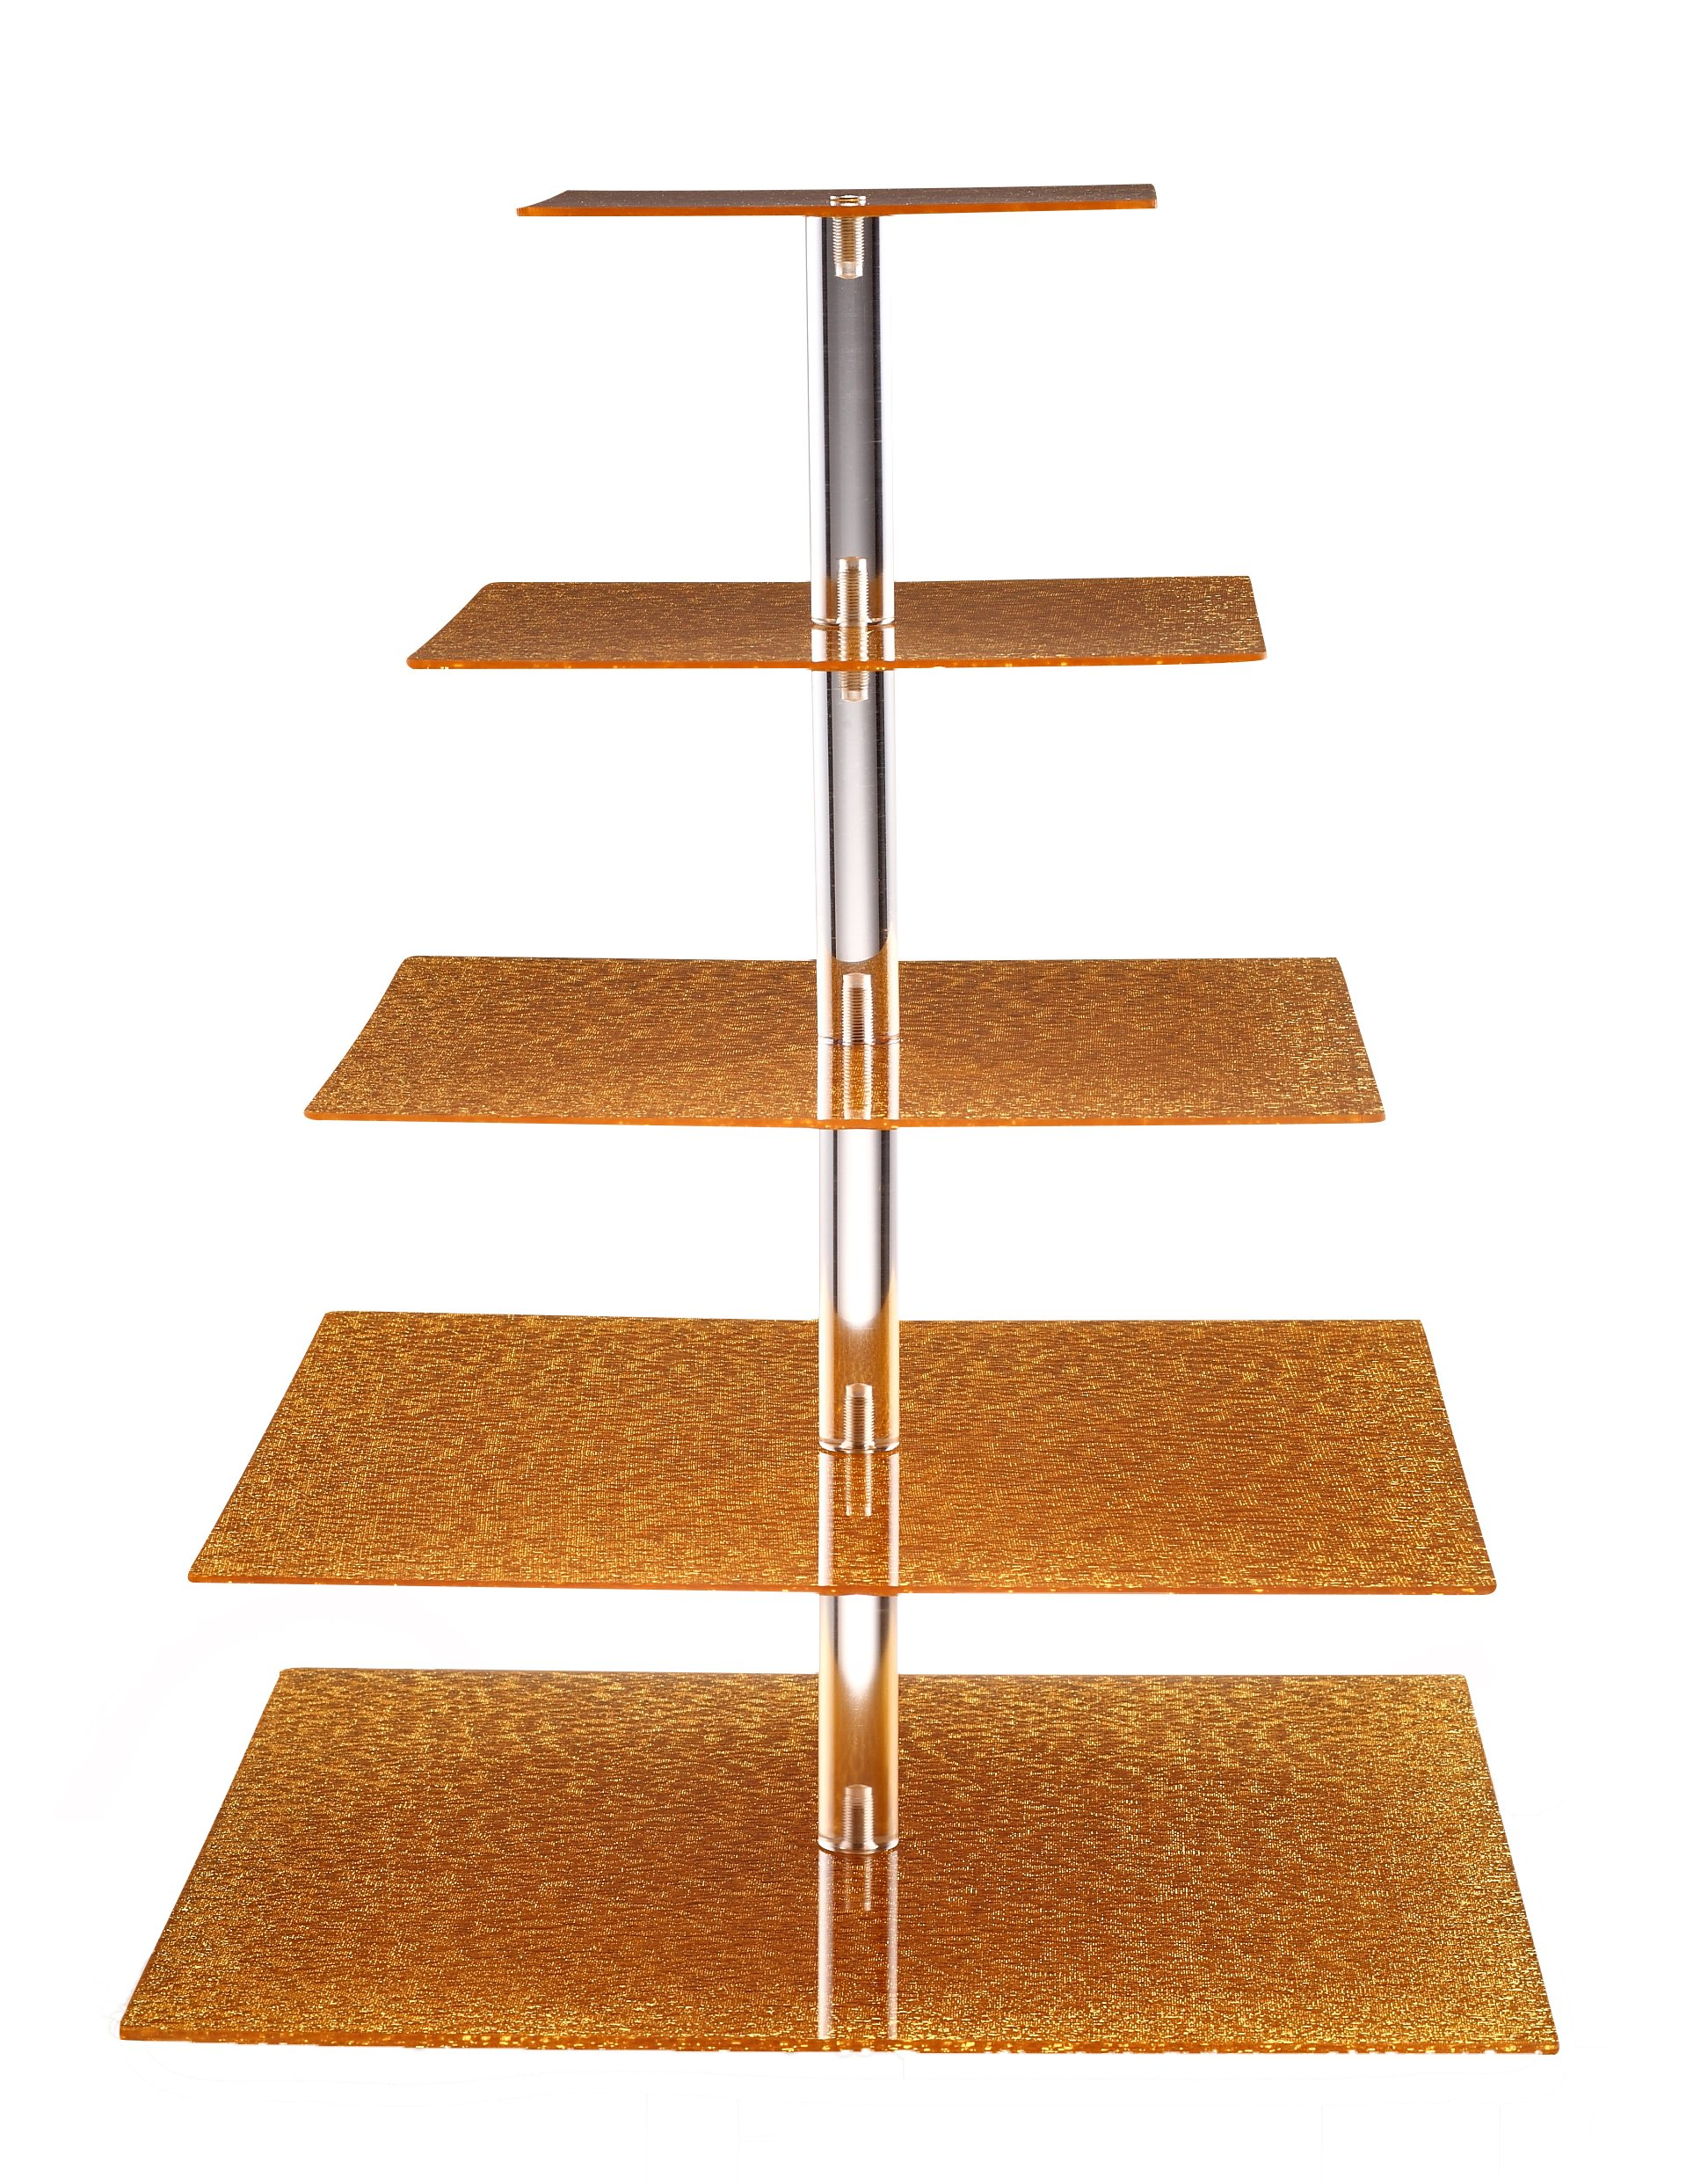 Eglaf Acrylic 5-Tier Gold Cupcake Stand Cakes and Desserts Display Tower/Food Display Platter for Wedding Party (5-Tier-Square-Gold) by Eglaf (Image #1)